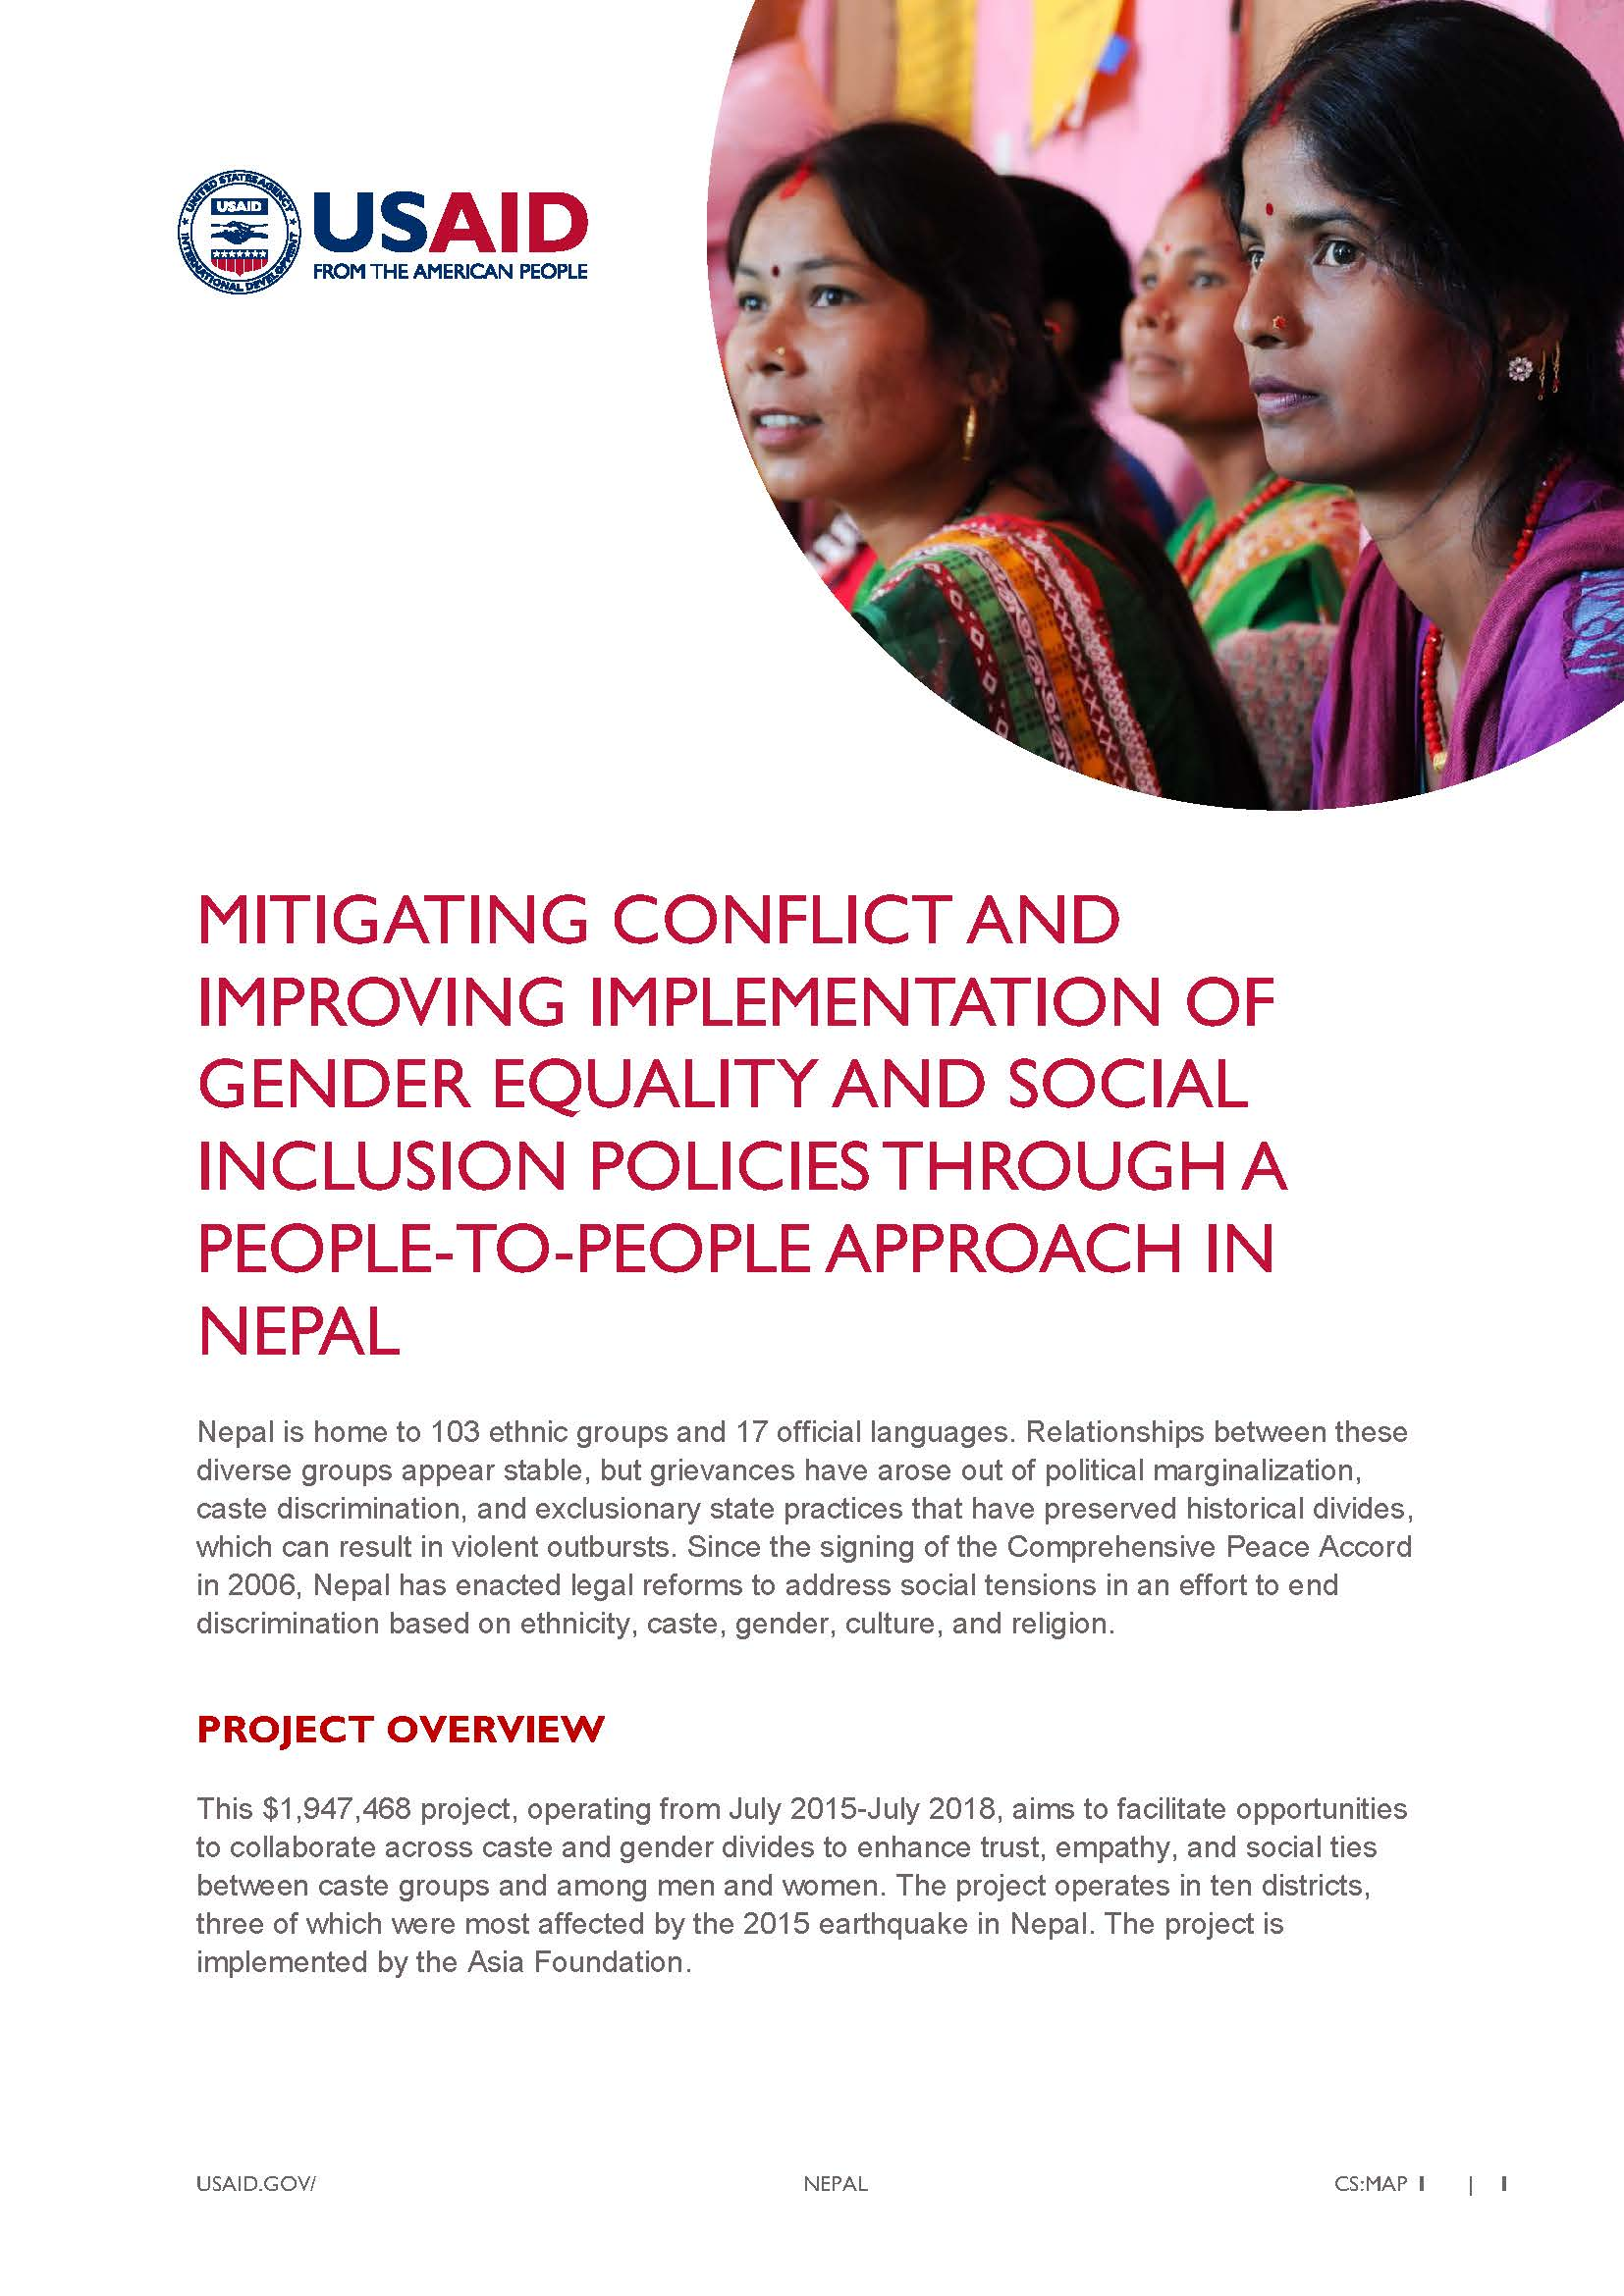 Fact Sheet: Mitigating Conflict and Improving Implementation of Gender Equality and Social Inclusion Policies Through a People-t